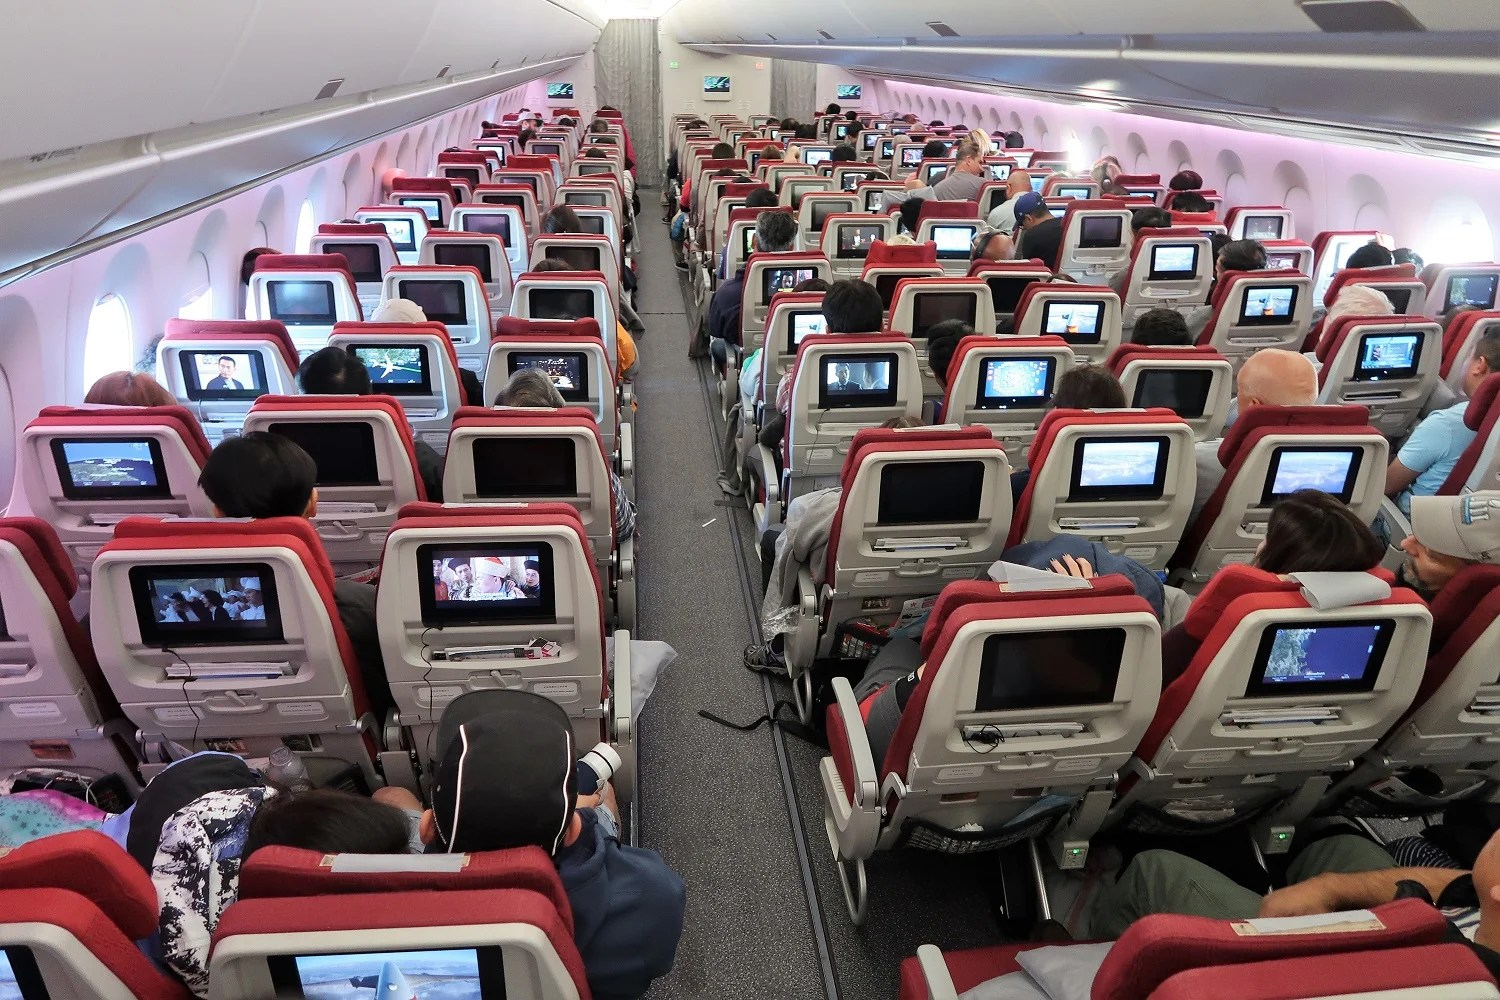 review hong kong airlines a350 900 economy lax hkg. Black Bedroom Furniture Sets. Home Design Ideas